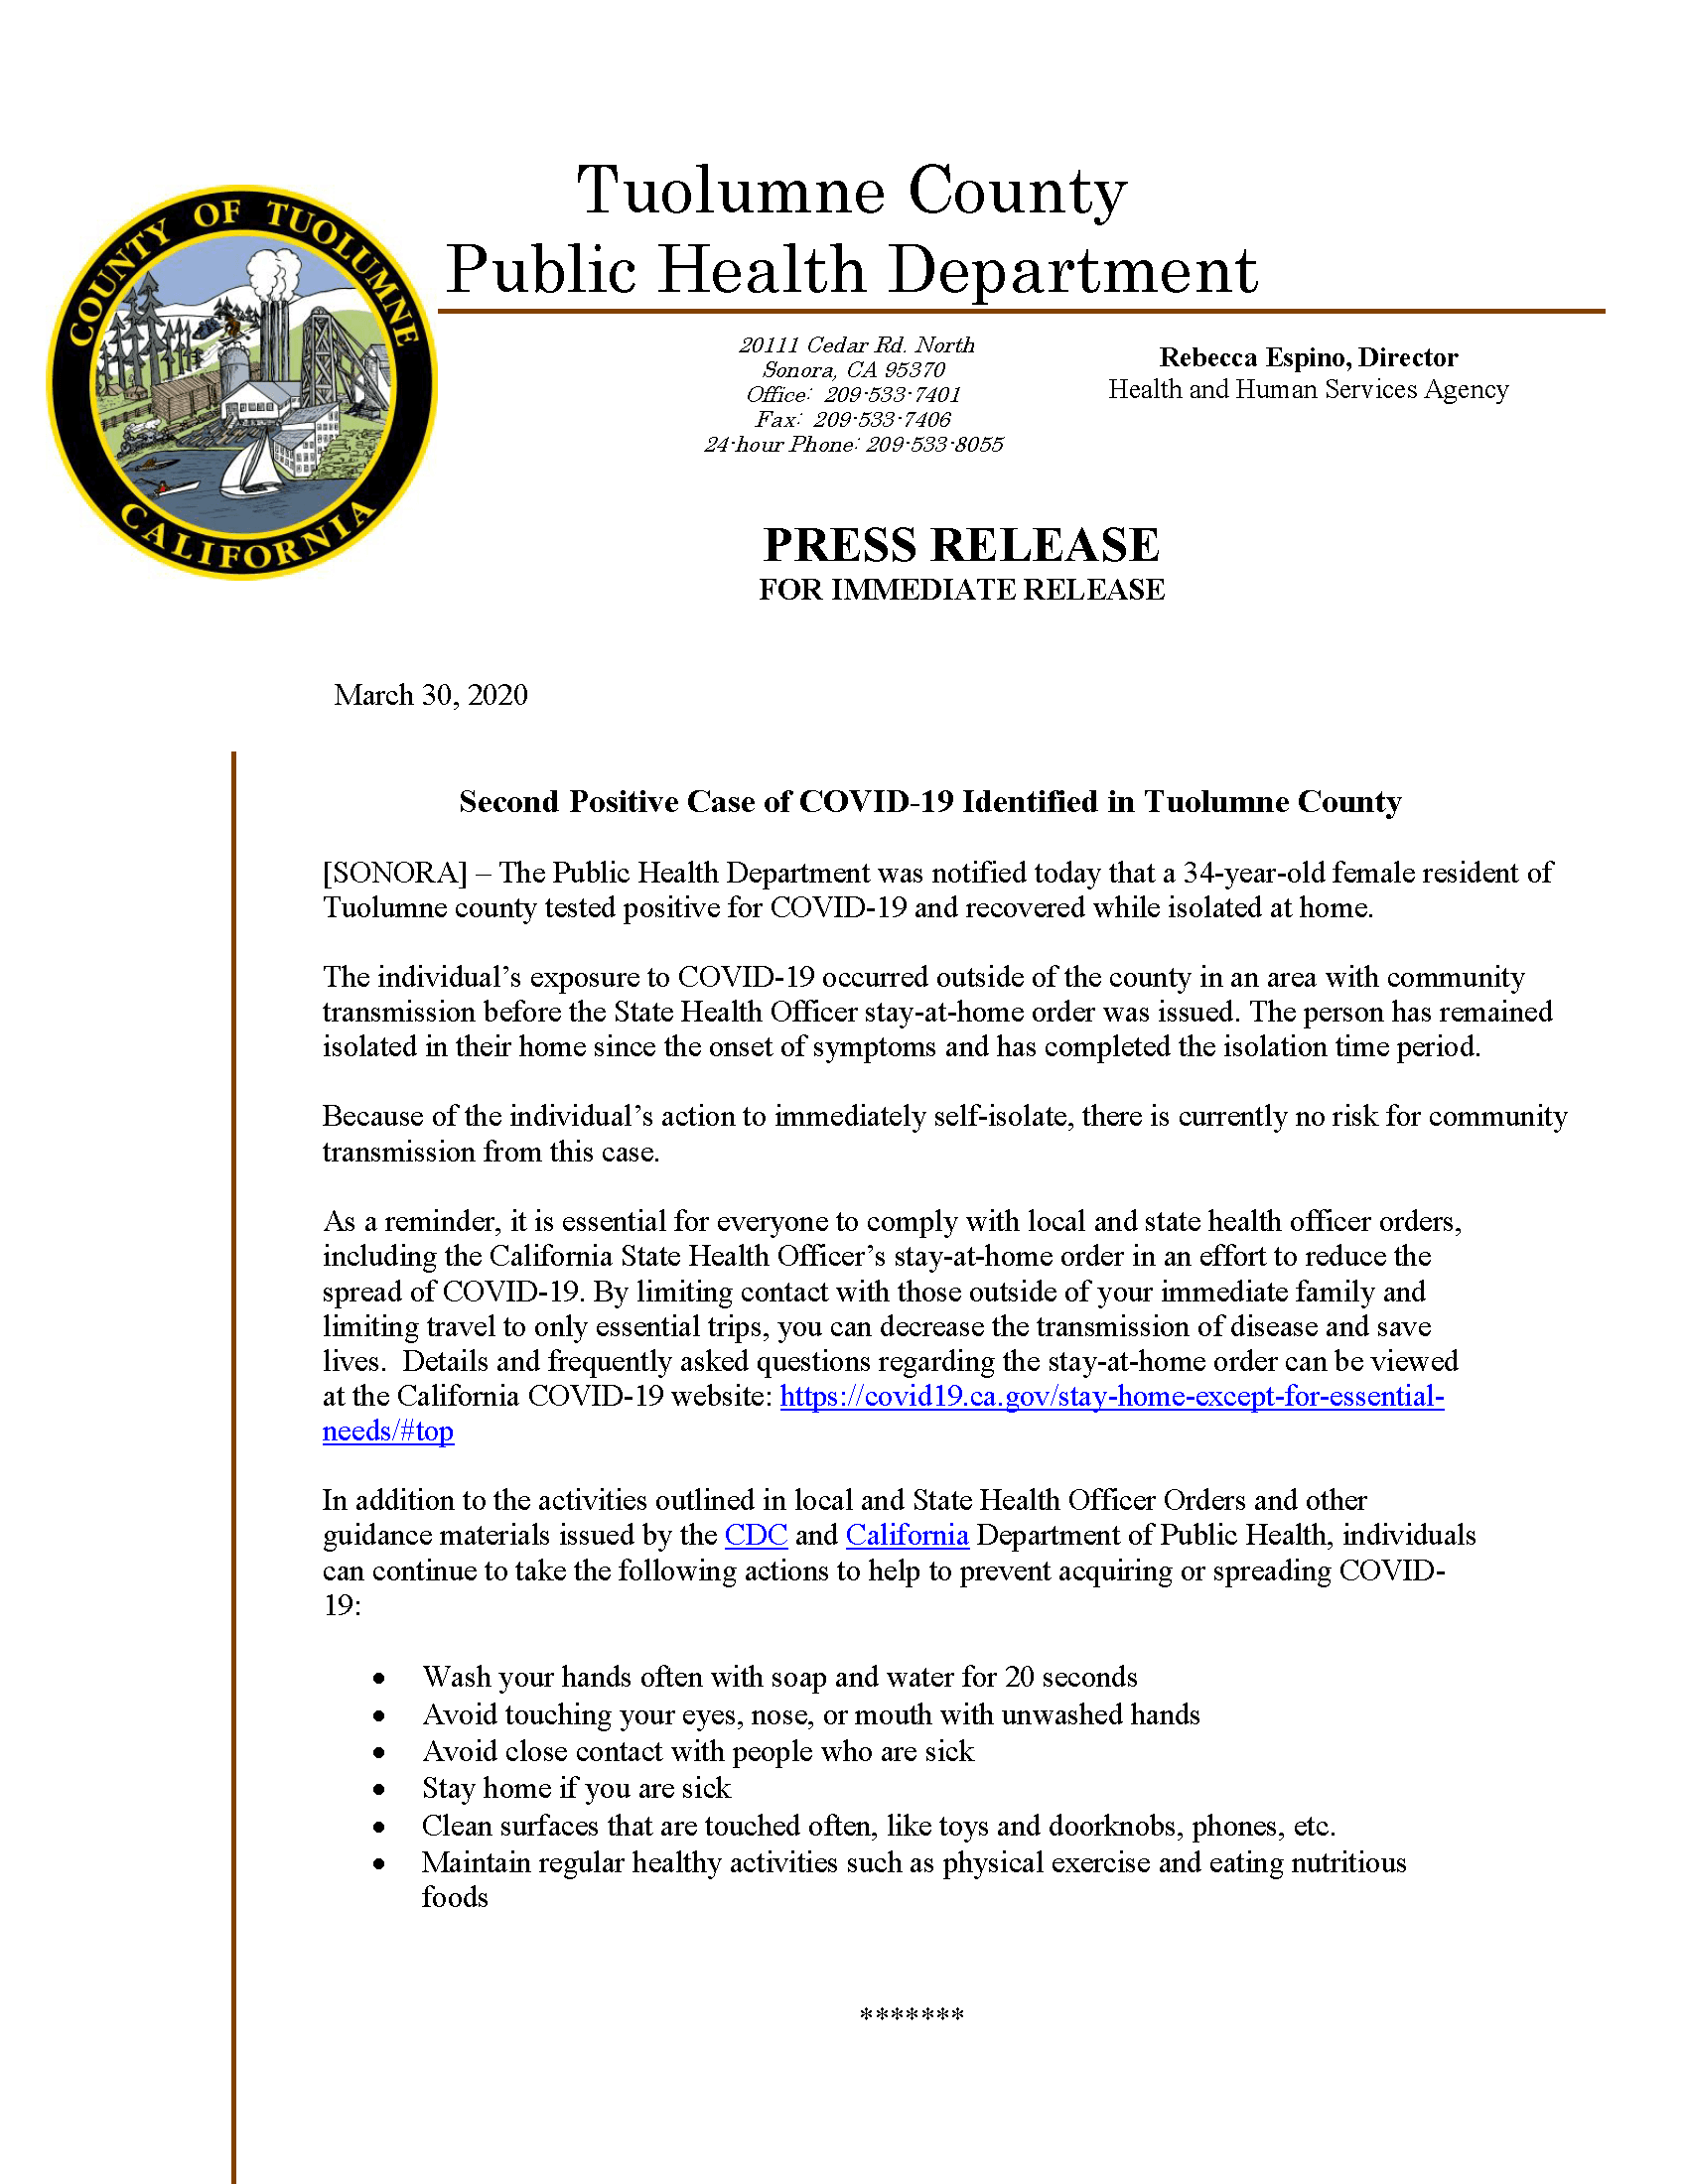 Second Case Identified Tuolumne County COVID-19 press release